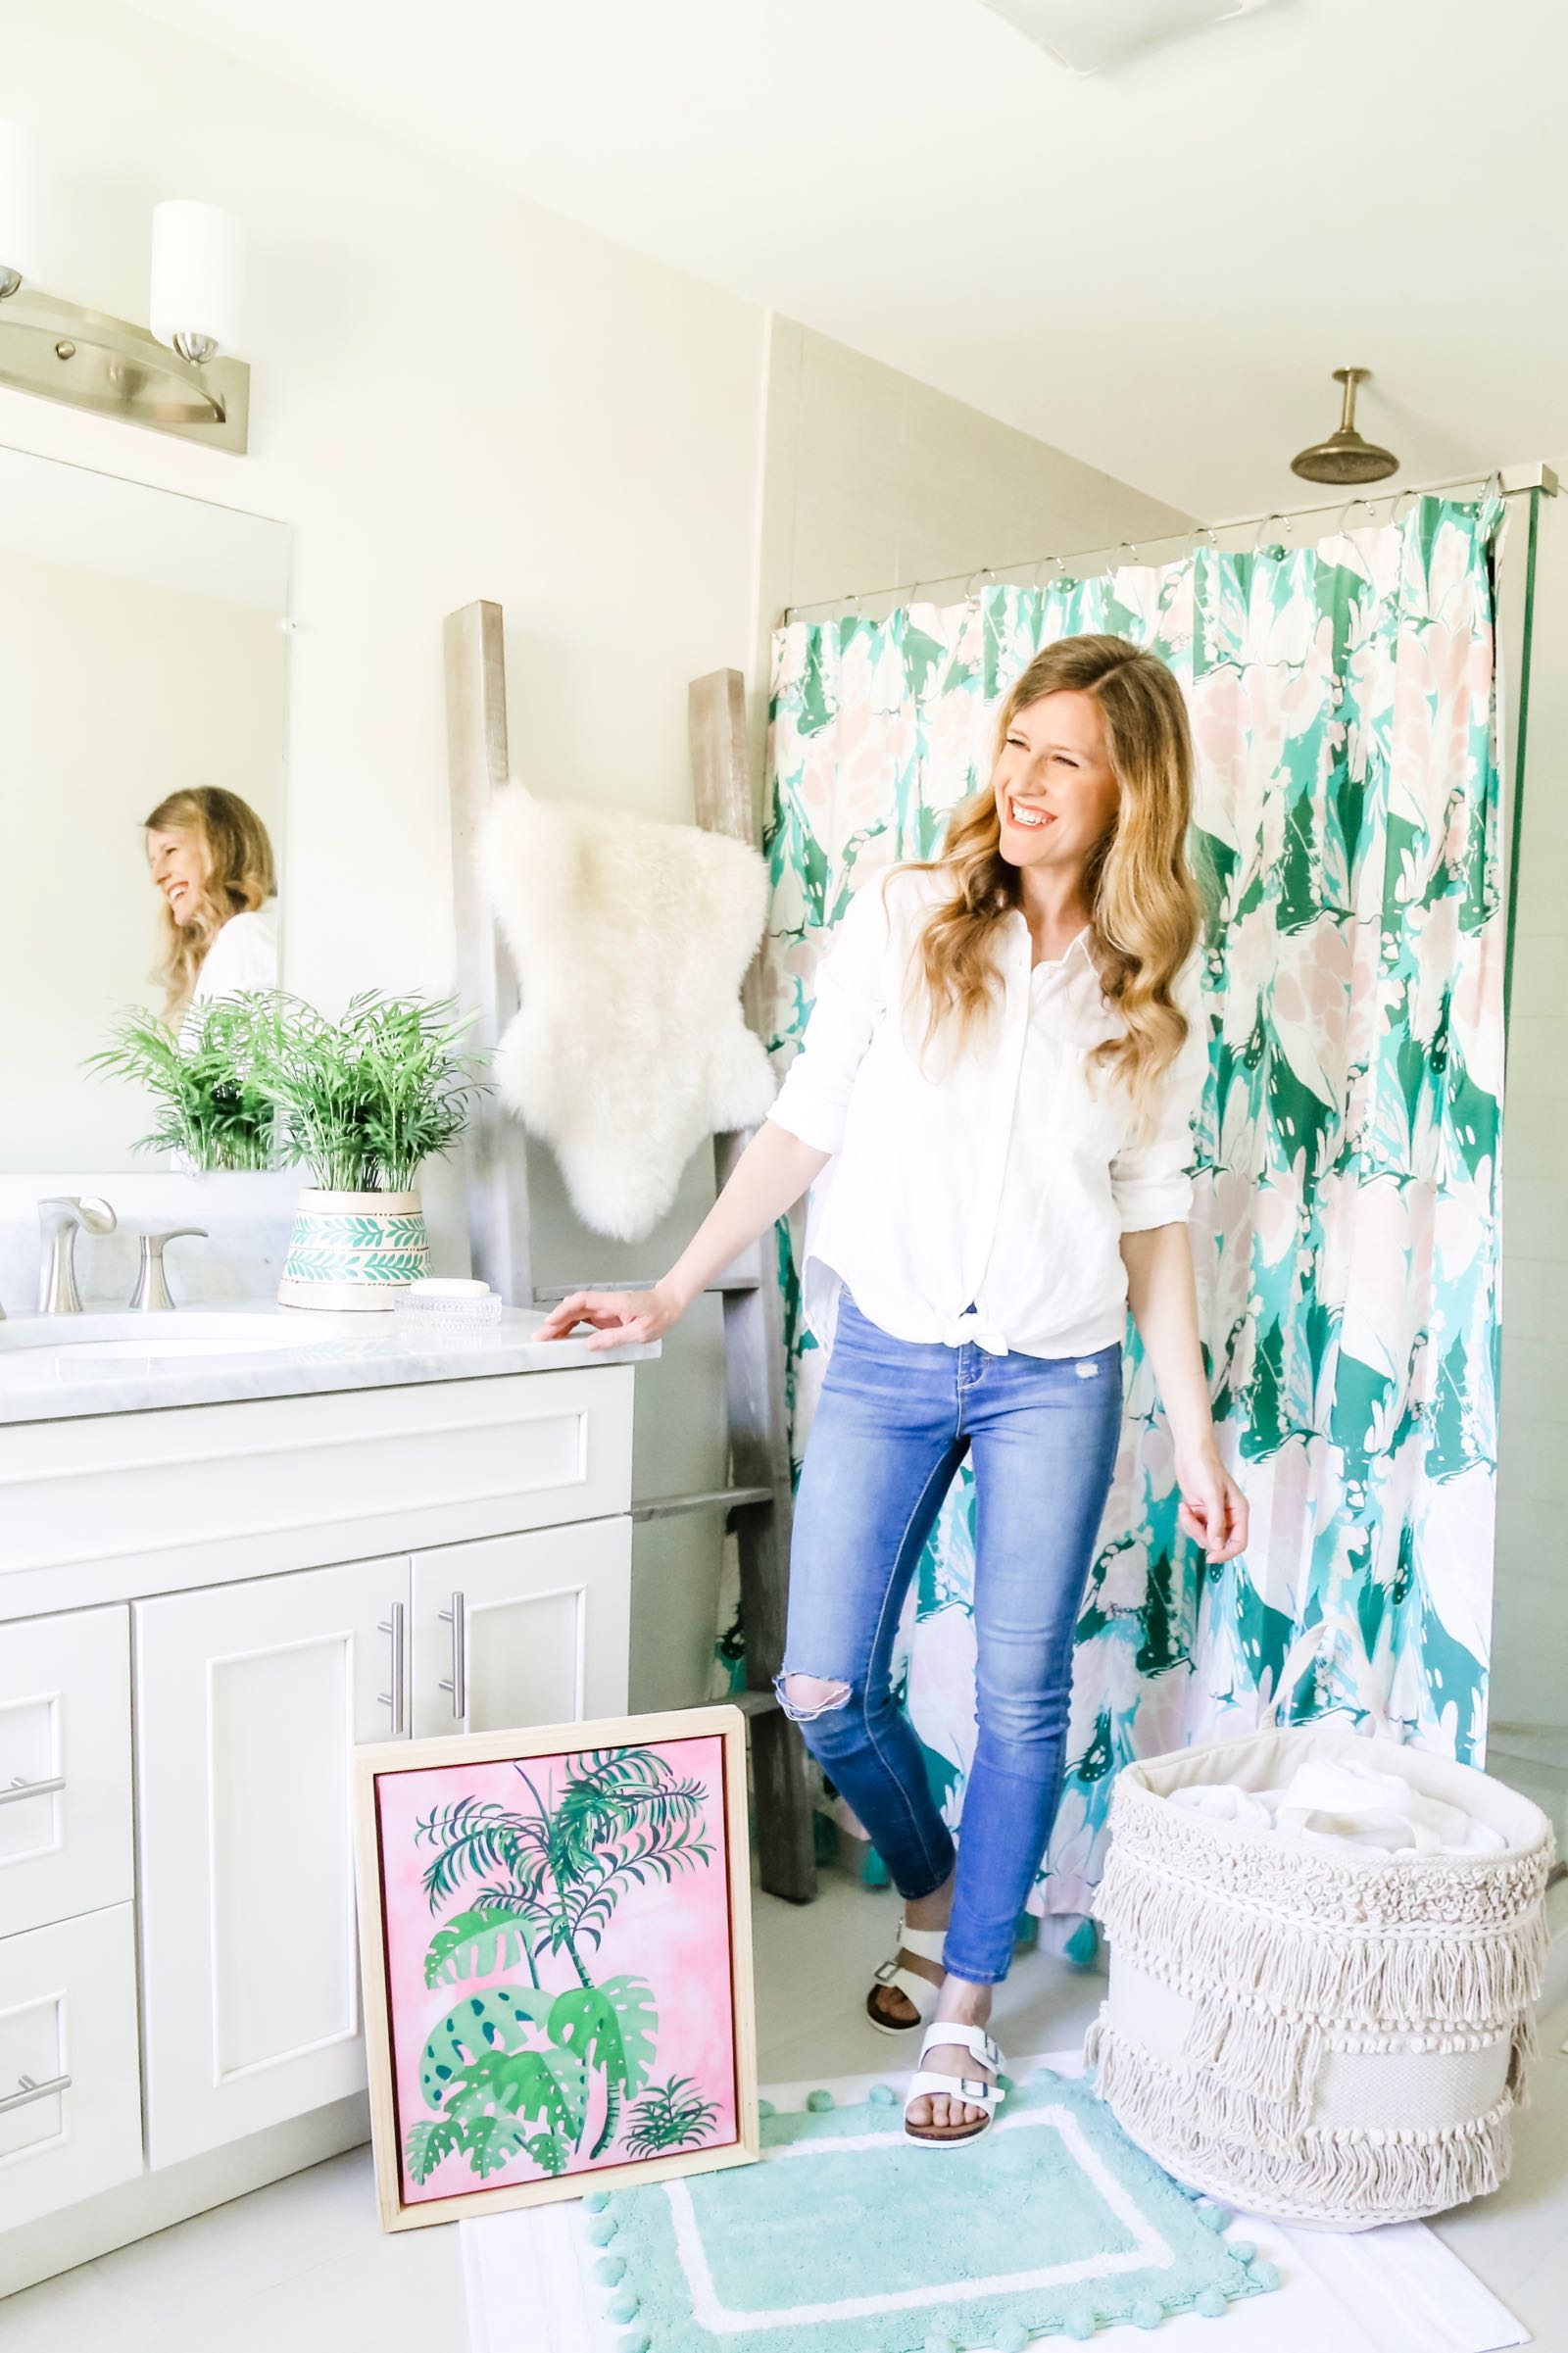 Drew Barrymore Flower Home at Walmart.com - eclectic, joyful, inspired pieces for the home!